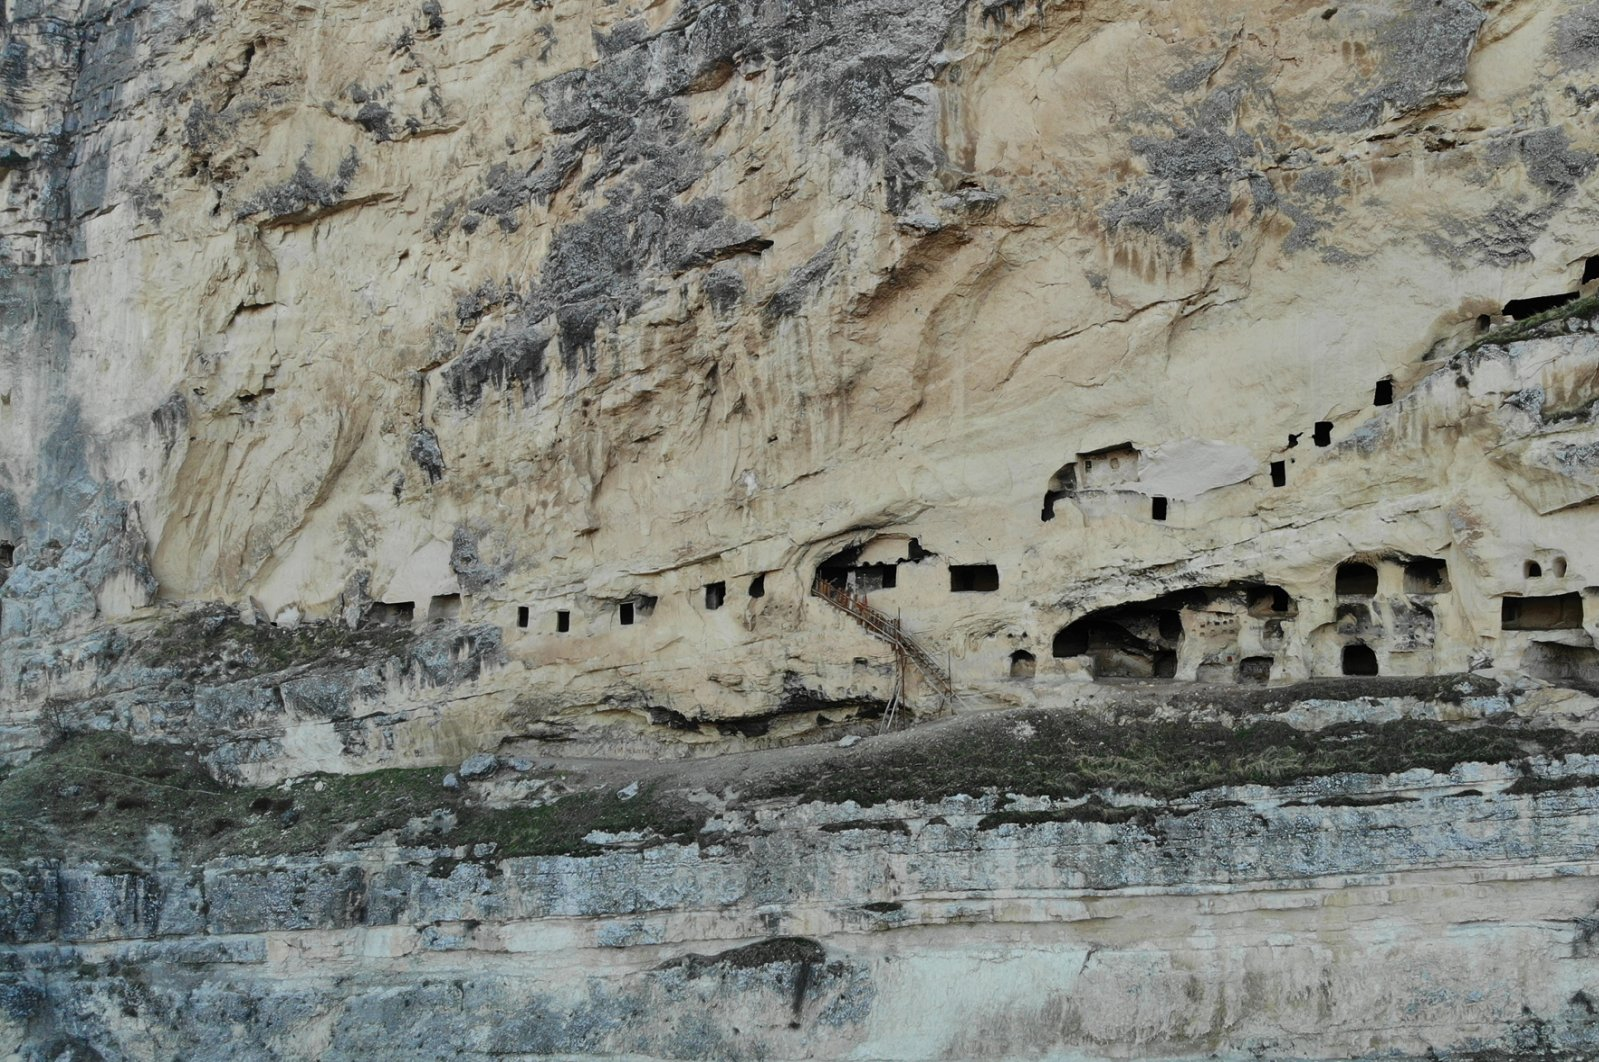 The cave rooms photographed in Tunceli, eastern Turkey, Dec. 29, 2020. (DHA Photo)